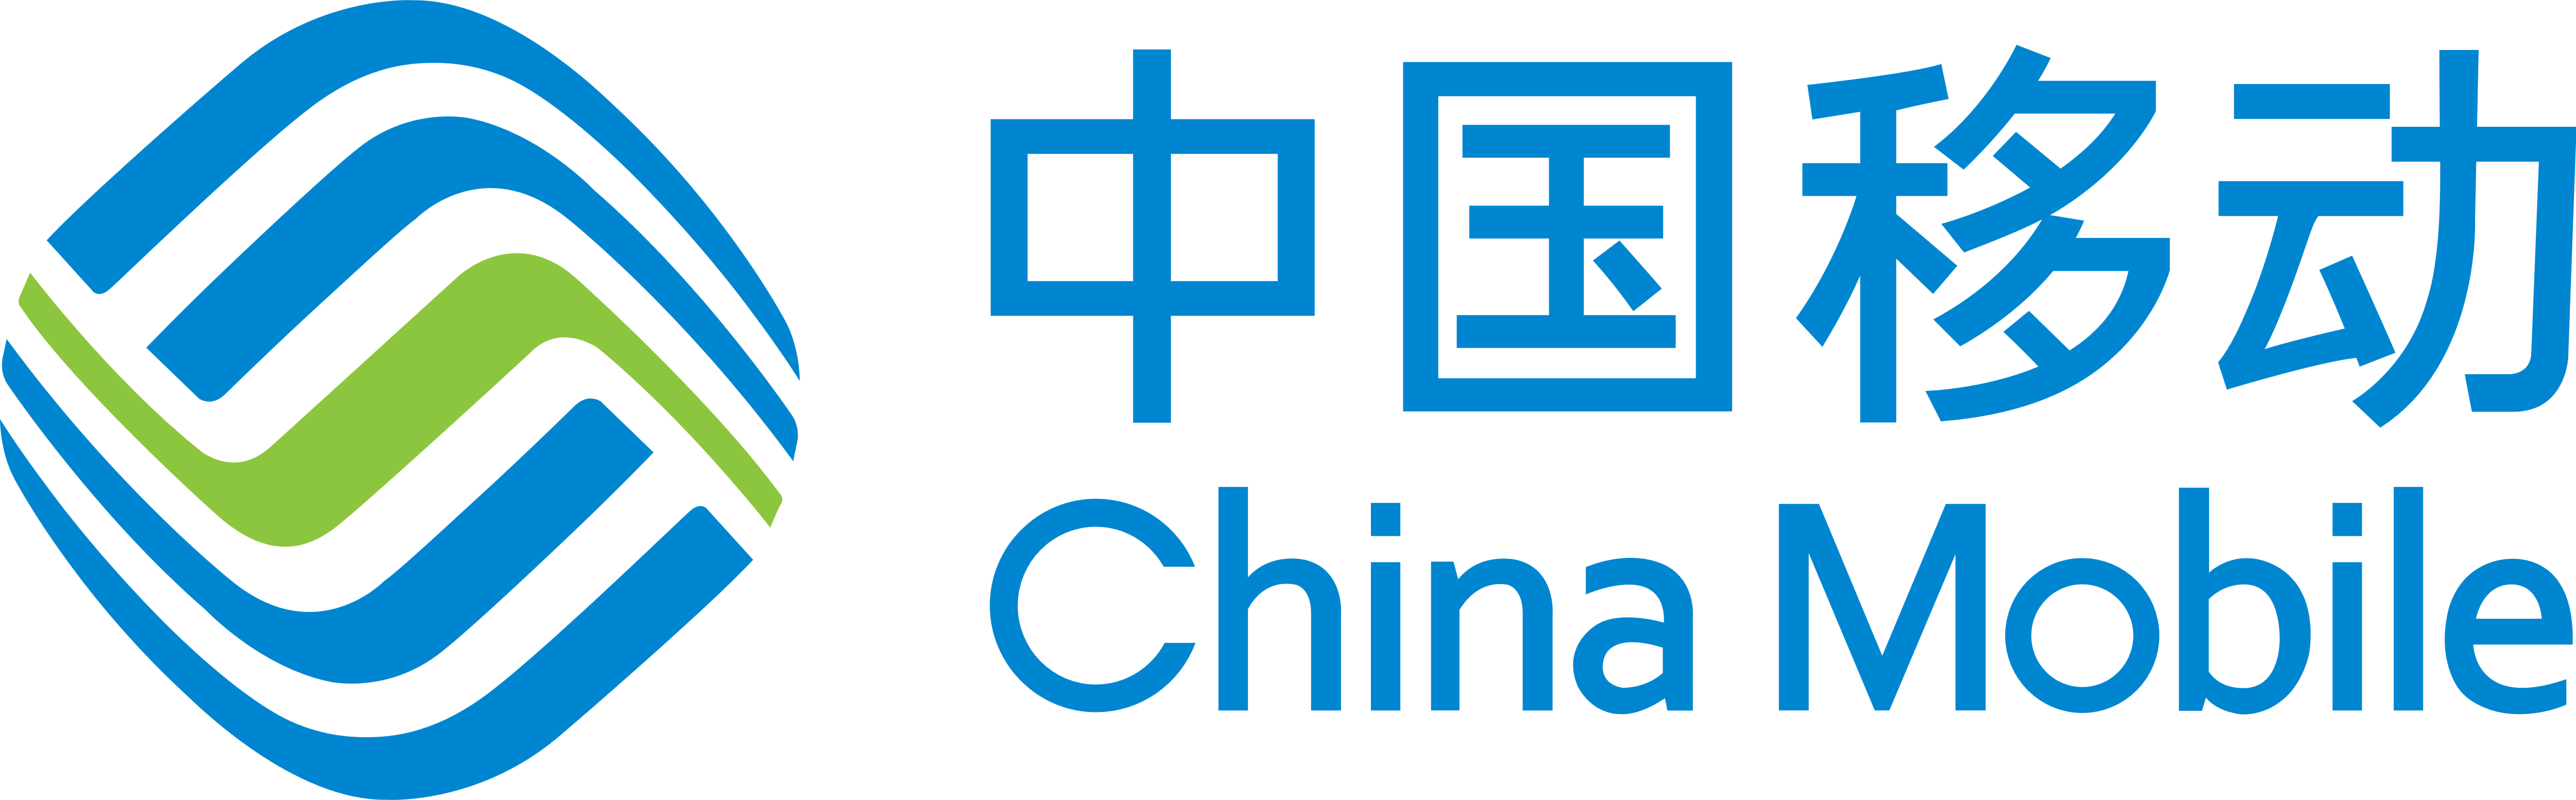 China mobile logos download for Mobile logo